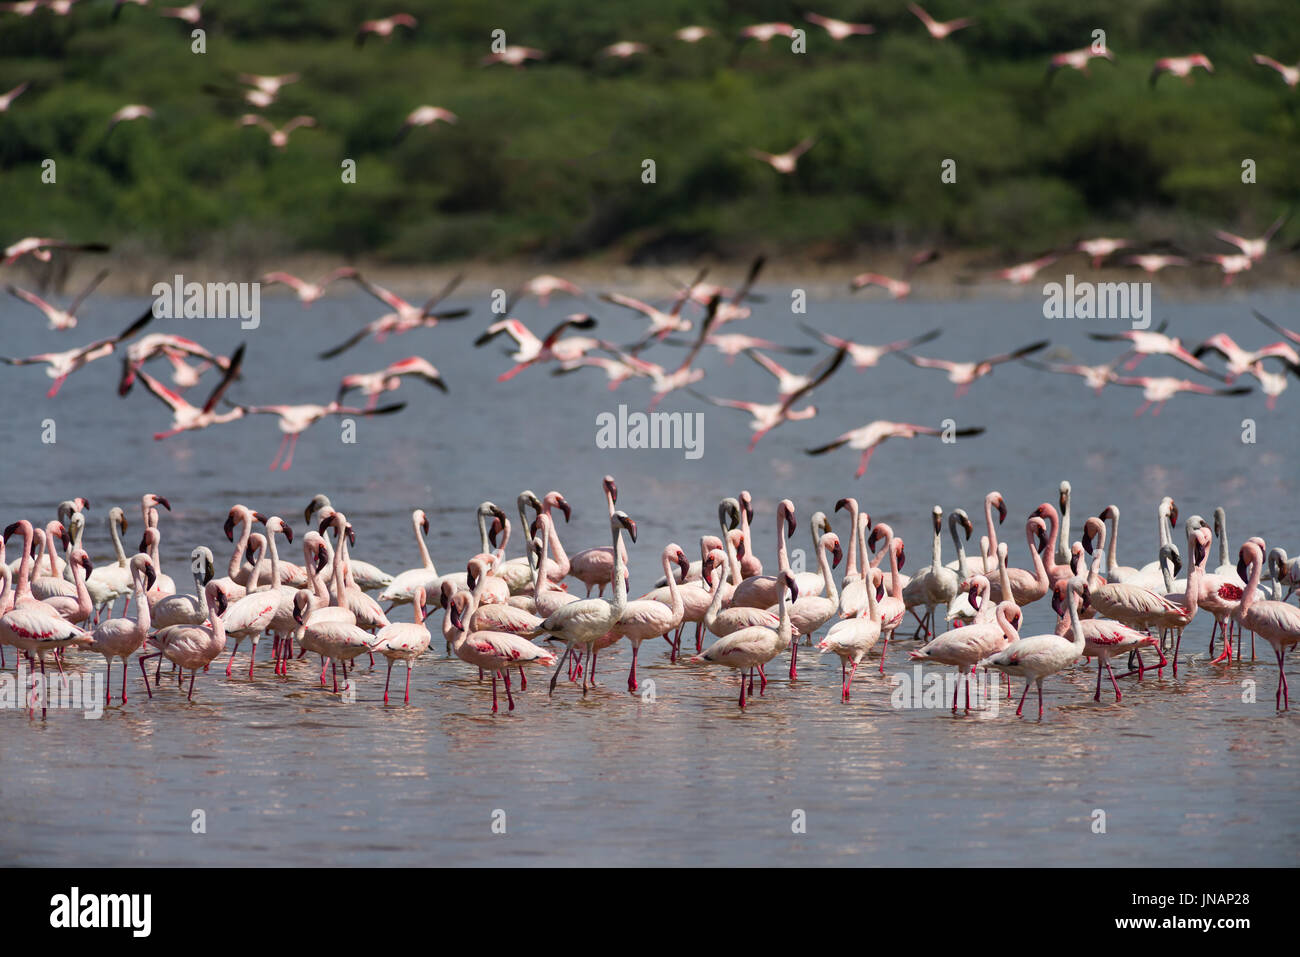 Lesser Flamingos Standing In Water And Flying In Background (Phoeniconaias minor) At Lake Bogoria National Park, Stock Photo